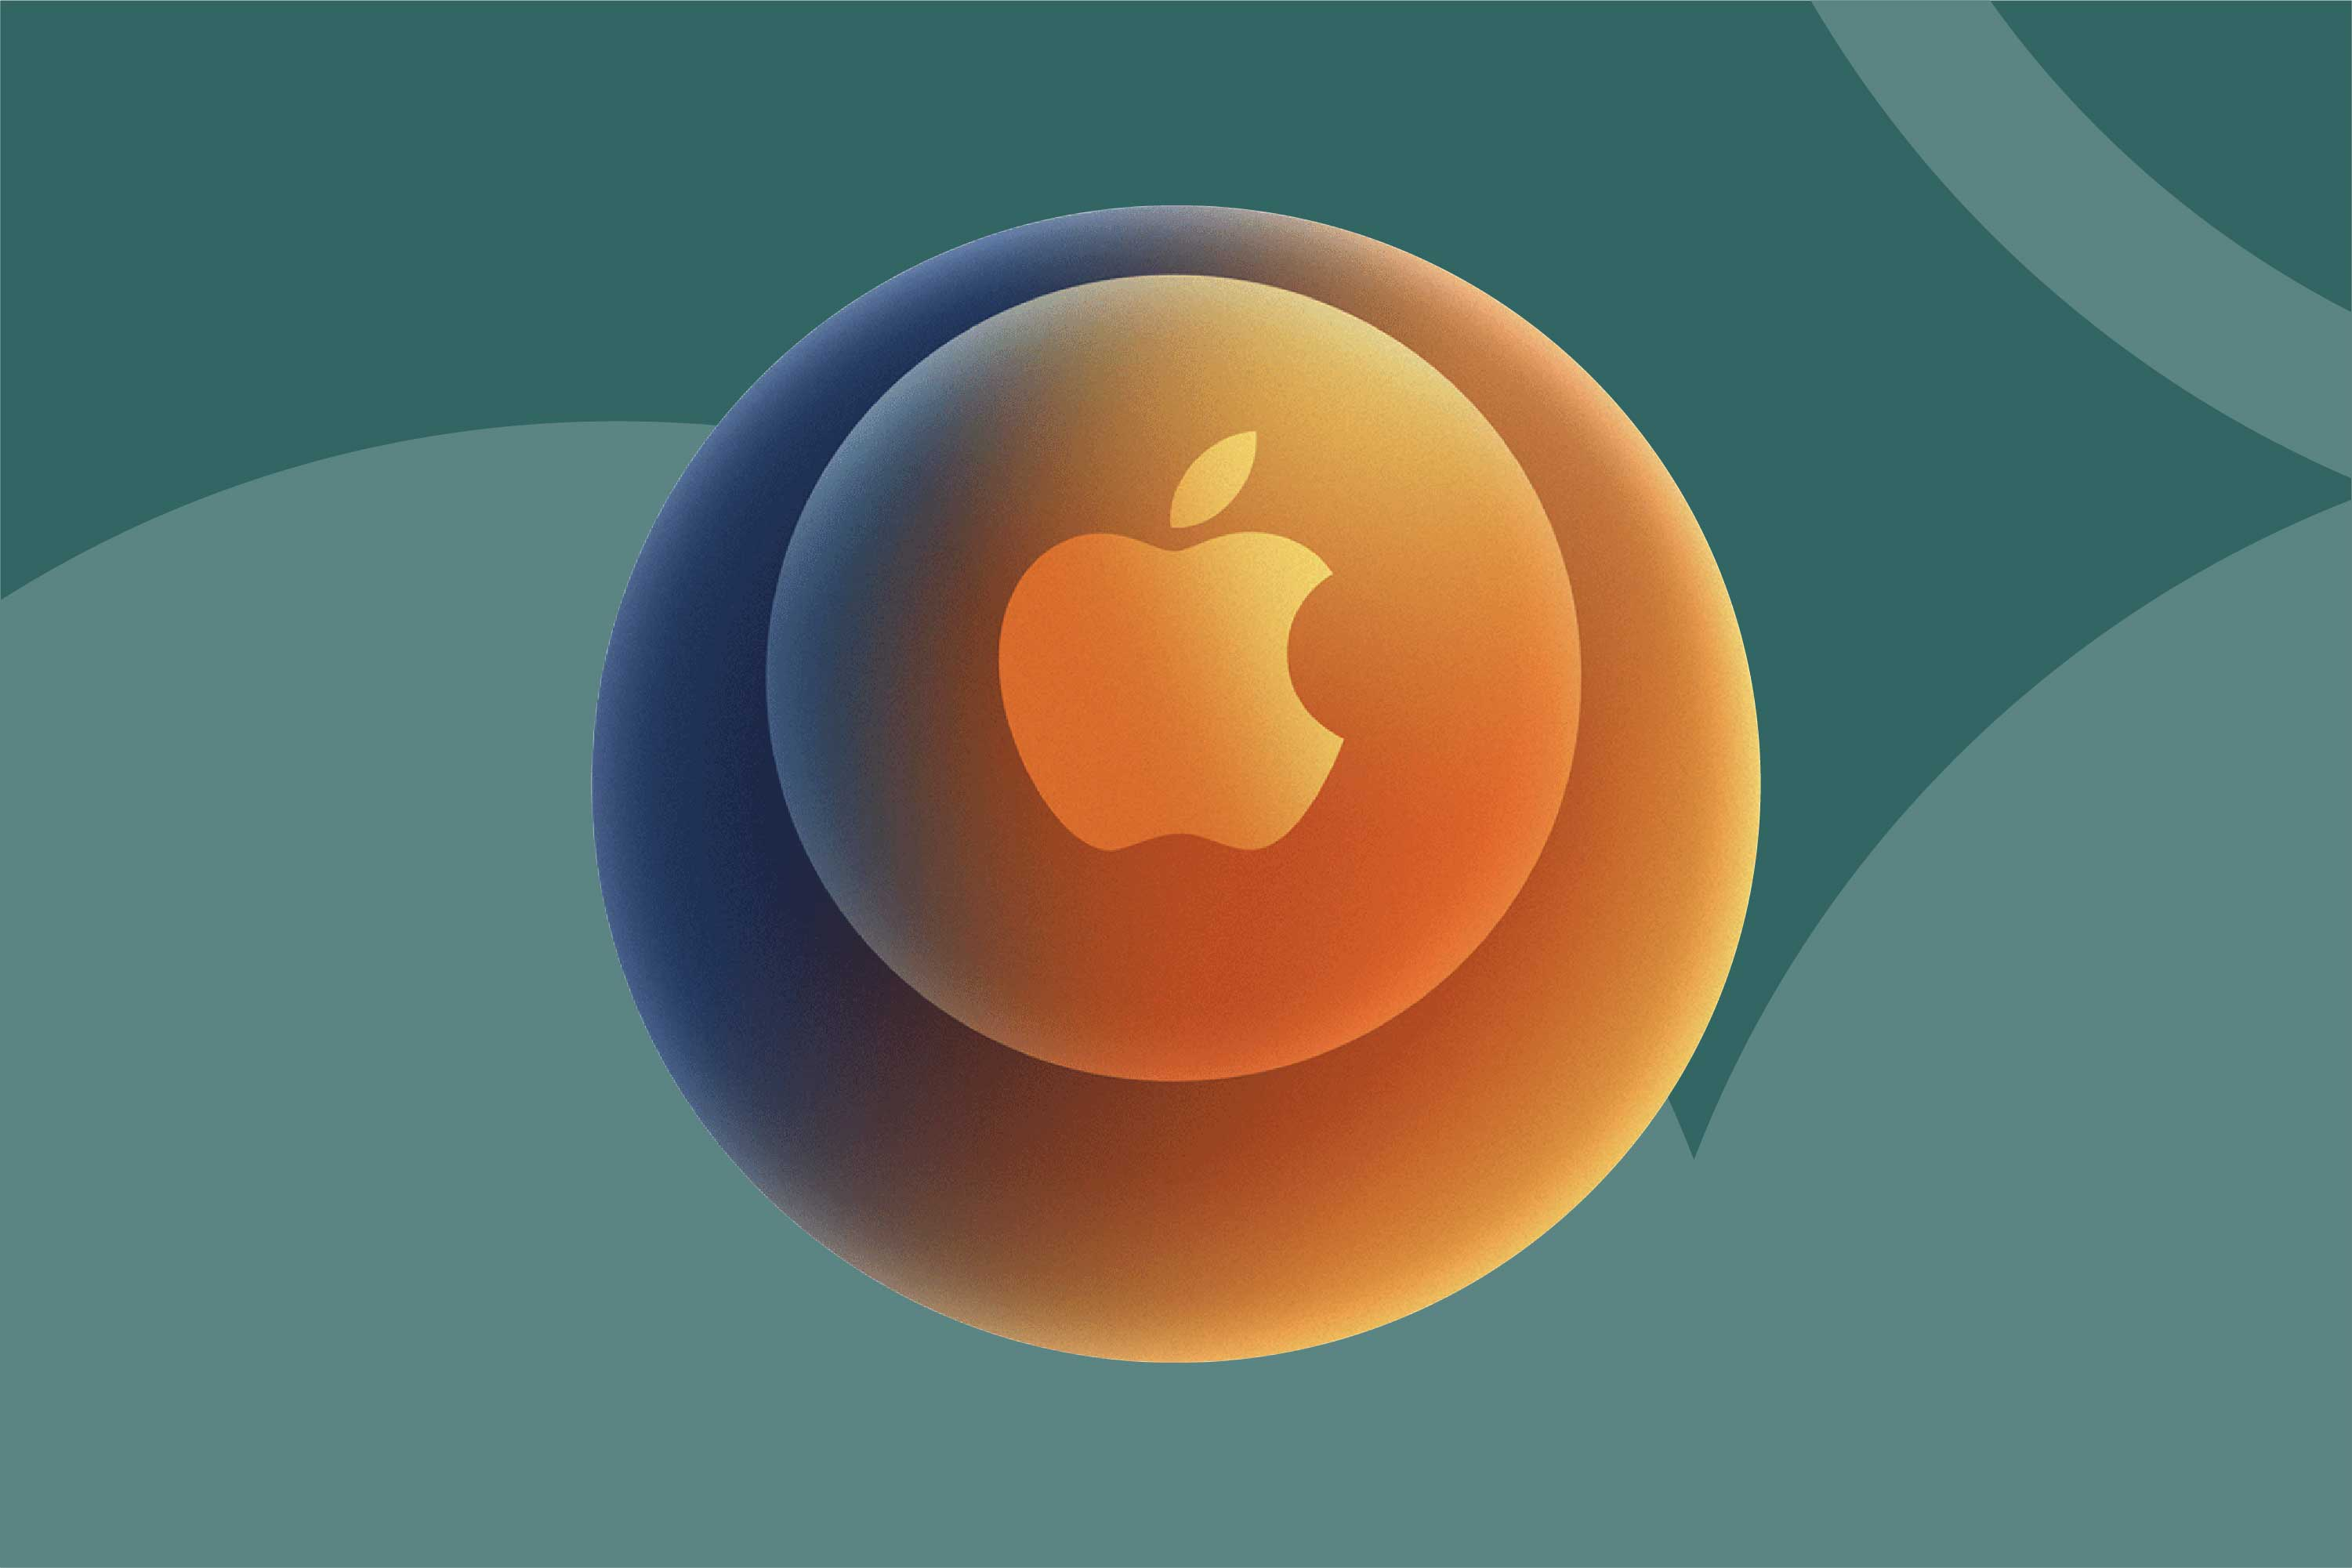 apple-s-october-2020-launch-event-the-details-you-missed-recap-20201013-1